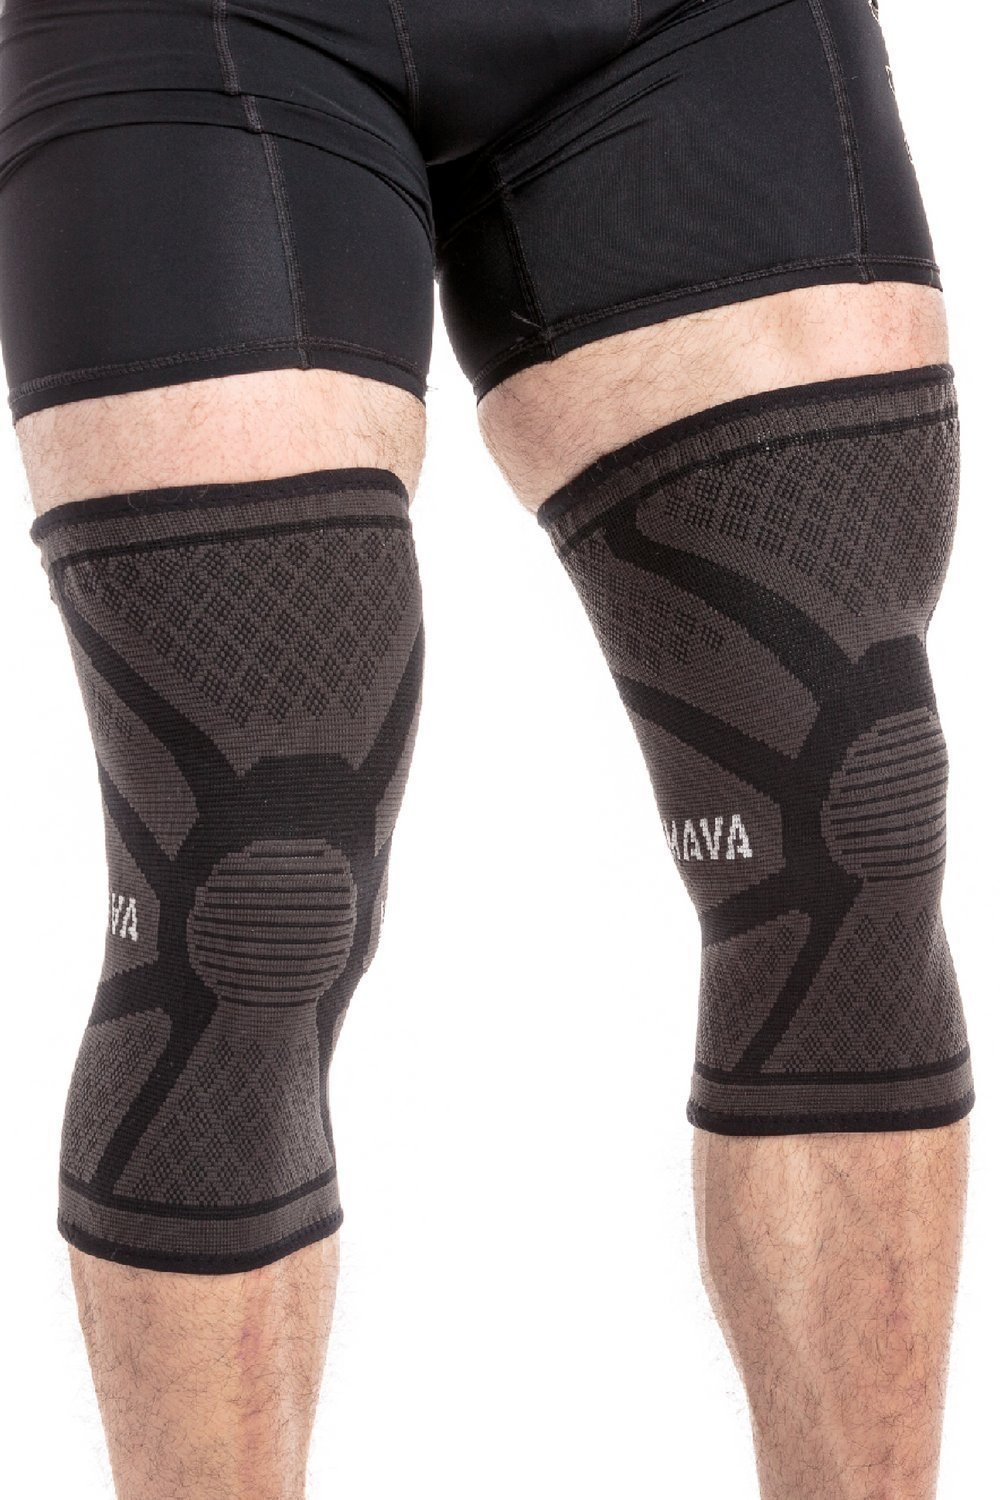 Mava Sports Knee Compression Sleeve Support, Pair (Black, Large)